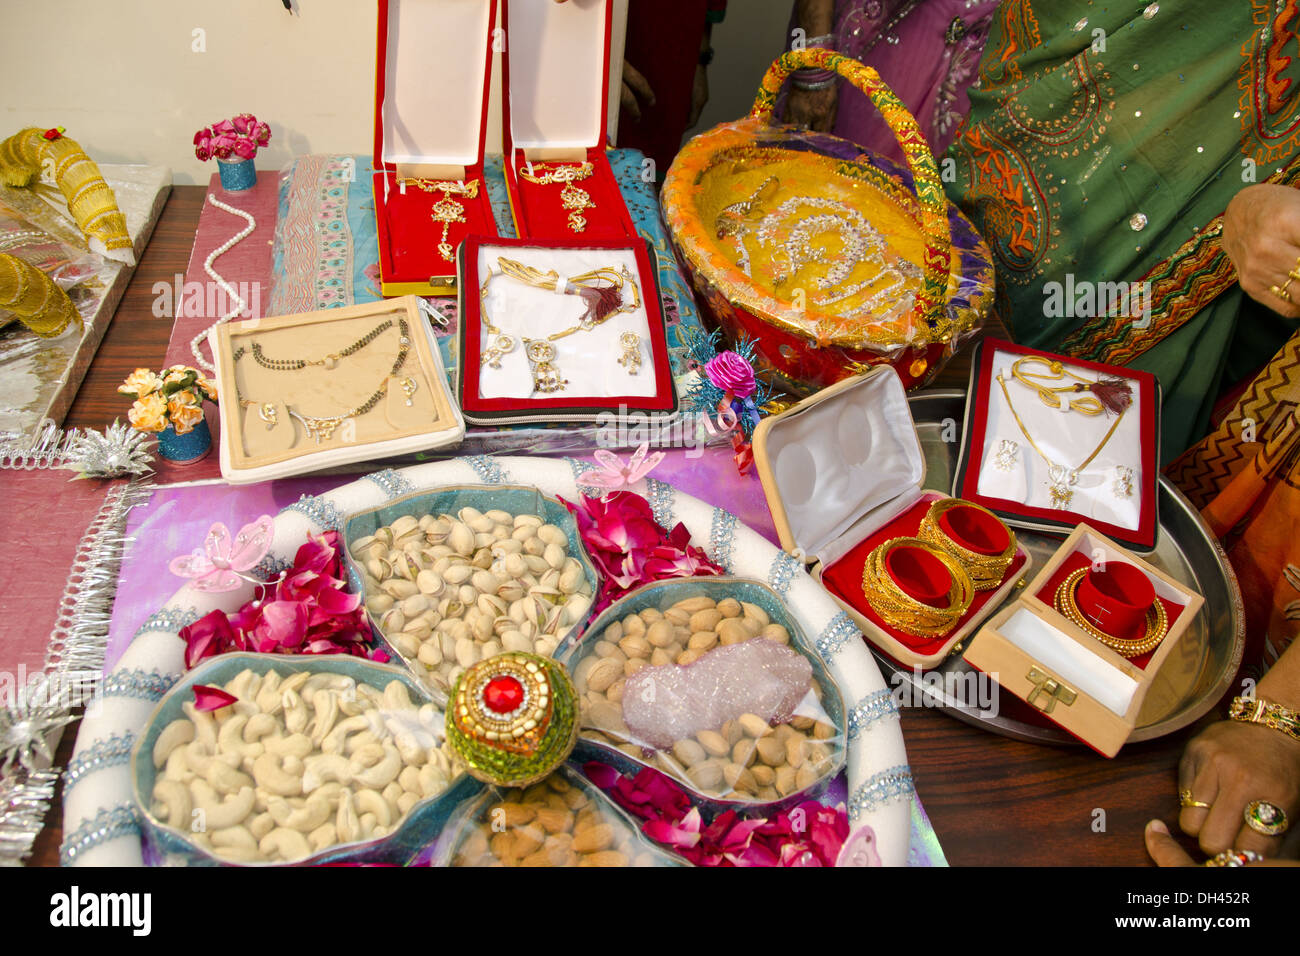 Dowry gifts jewellery dry fruits decorative packing for Indian wedding rajasthan India - msa 183850 & Dowry gifts jewellery dry fruits decorative packing for Indian Stock ...